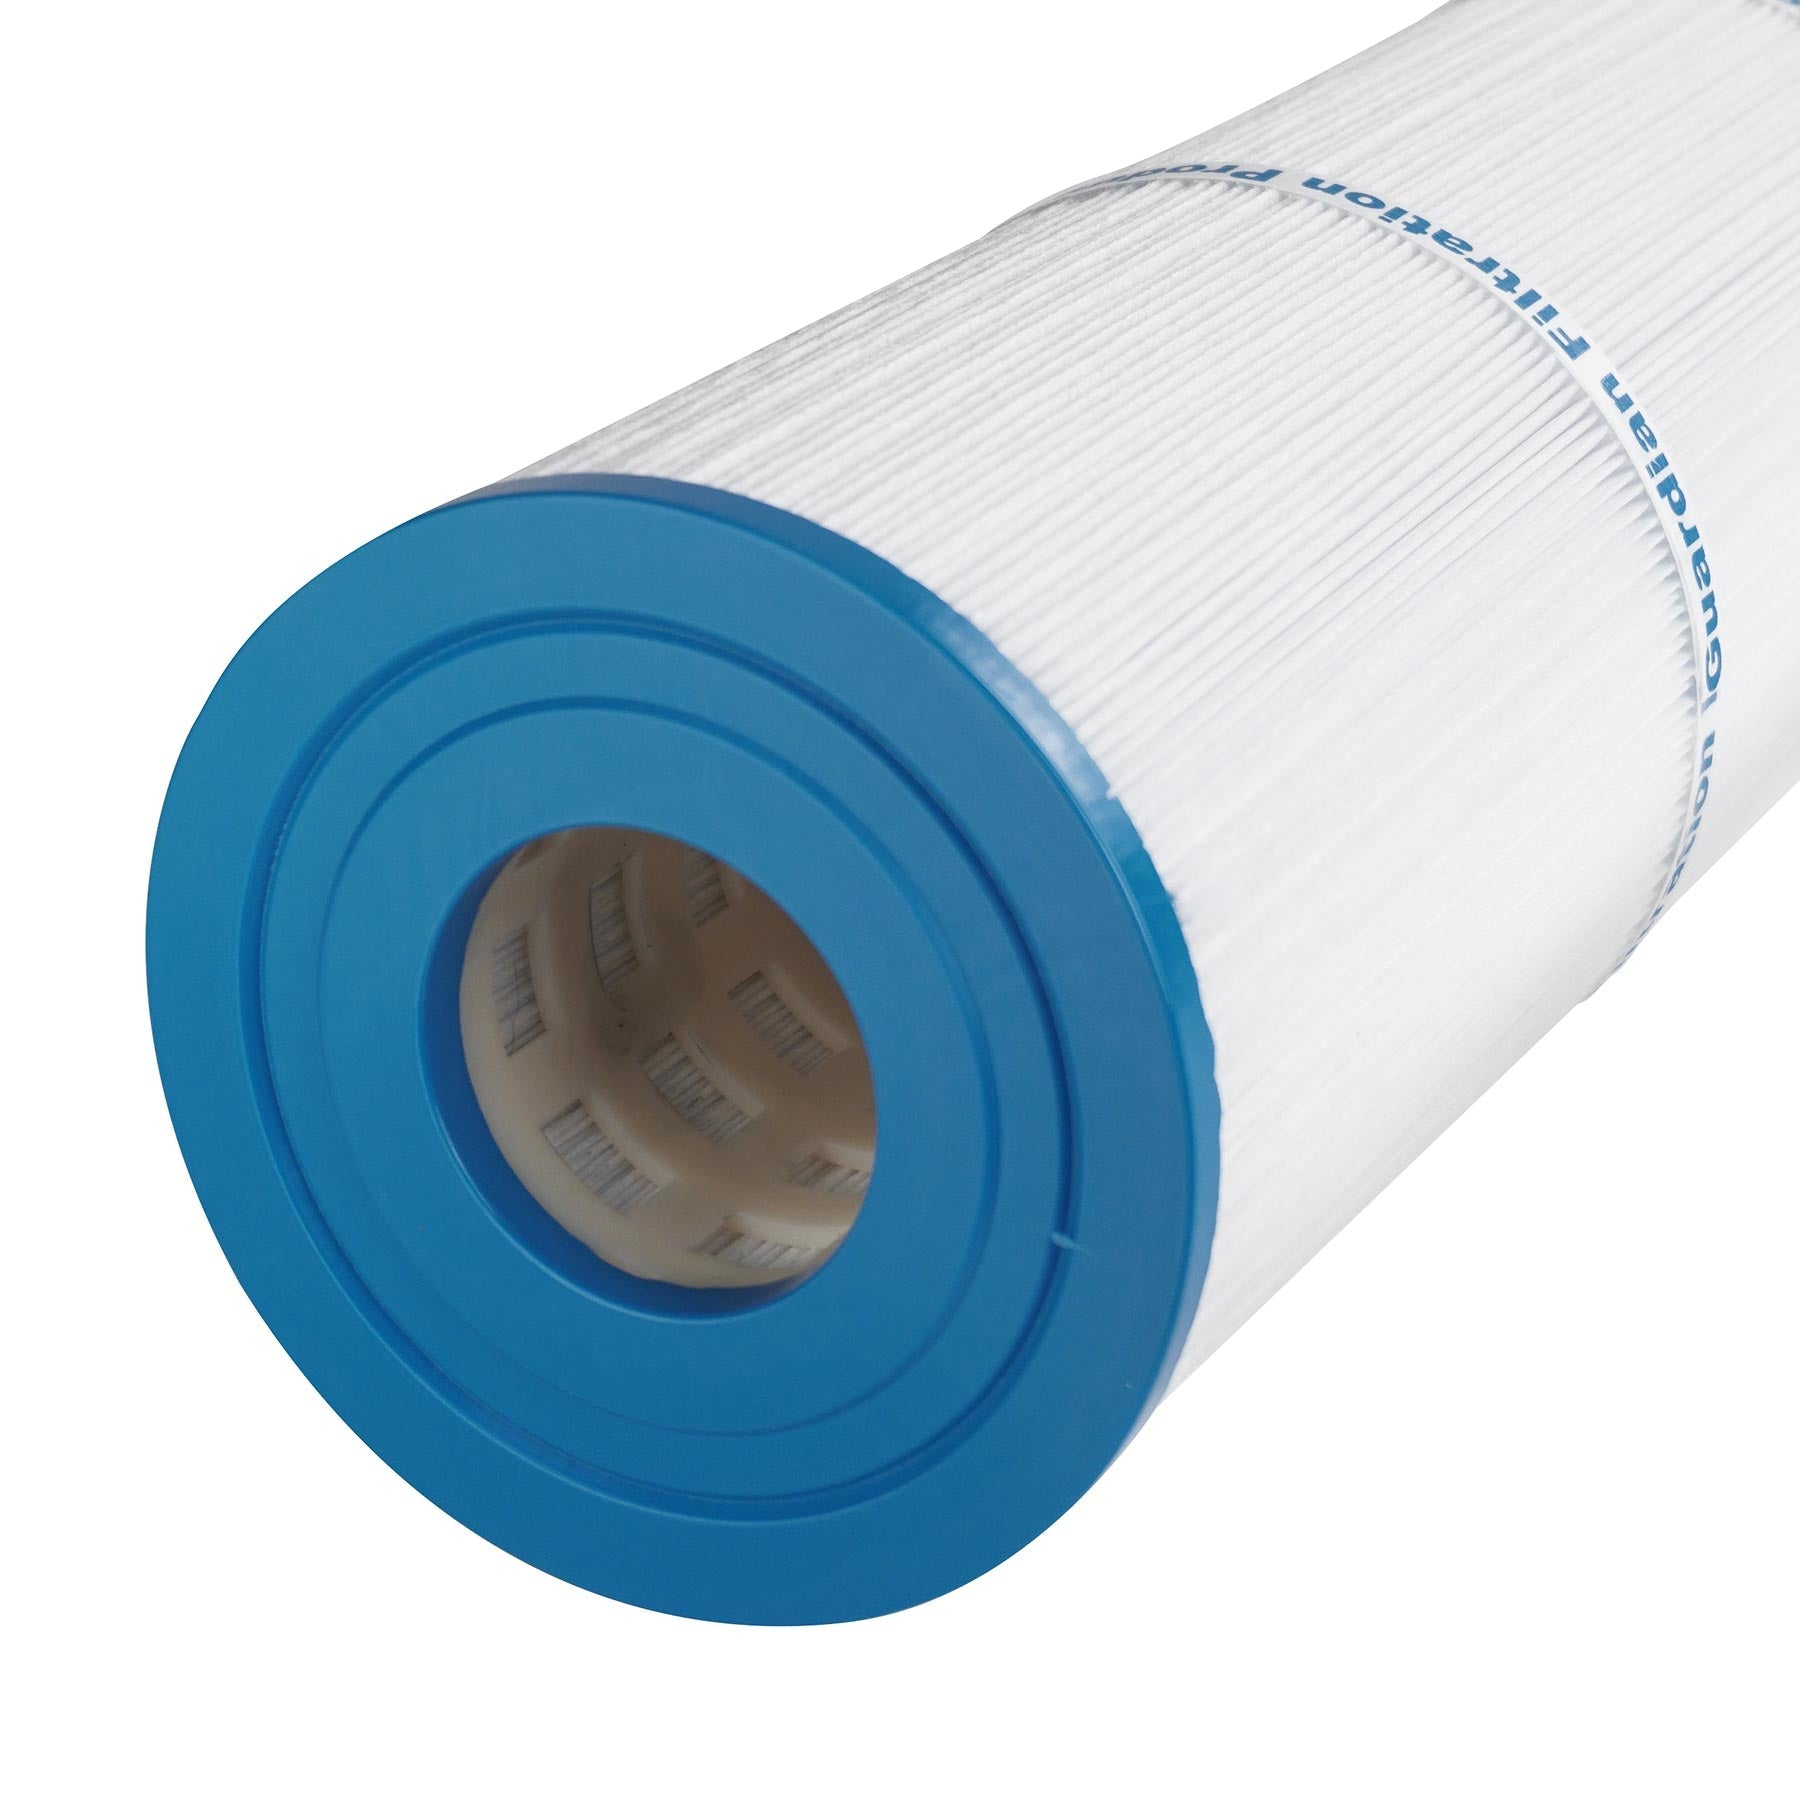 Replaces Unicel C-4970, Pleatco PCAL75 - Pool & Spa Filter Cartridge-Filter Cartridge-FilterDeal.com